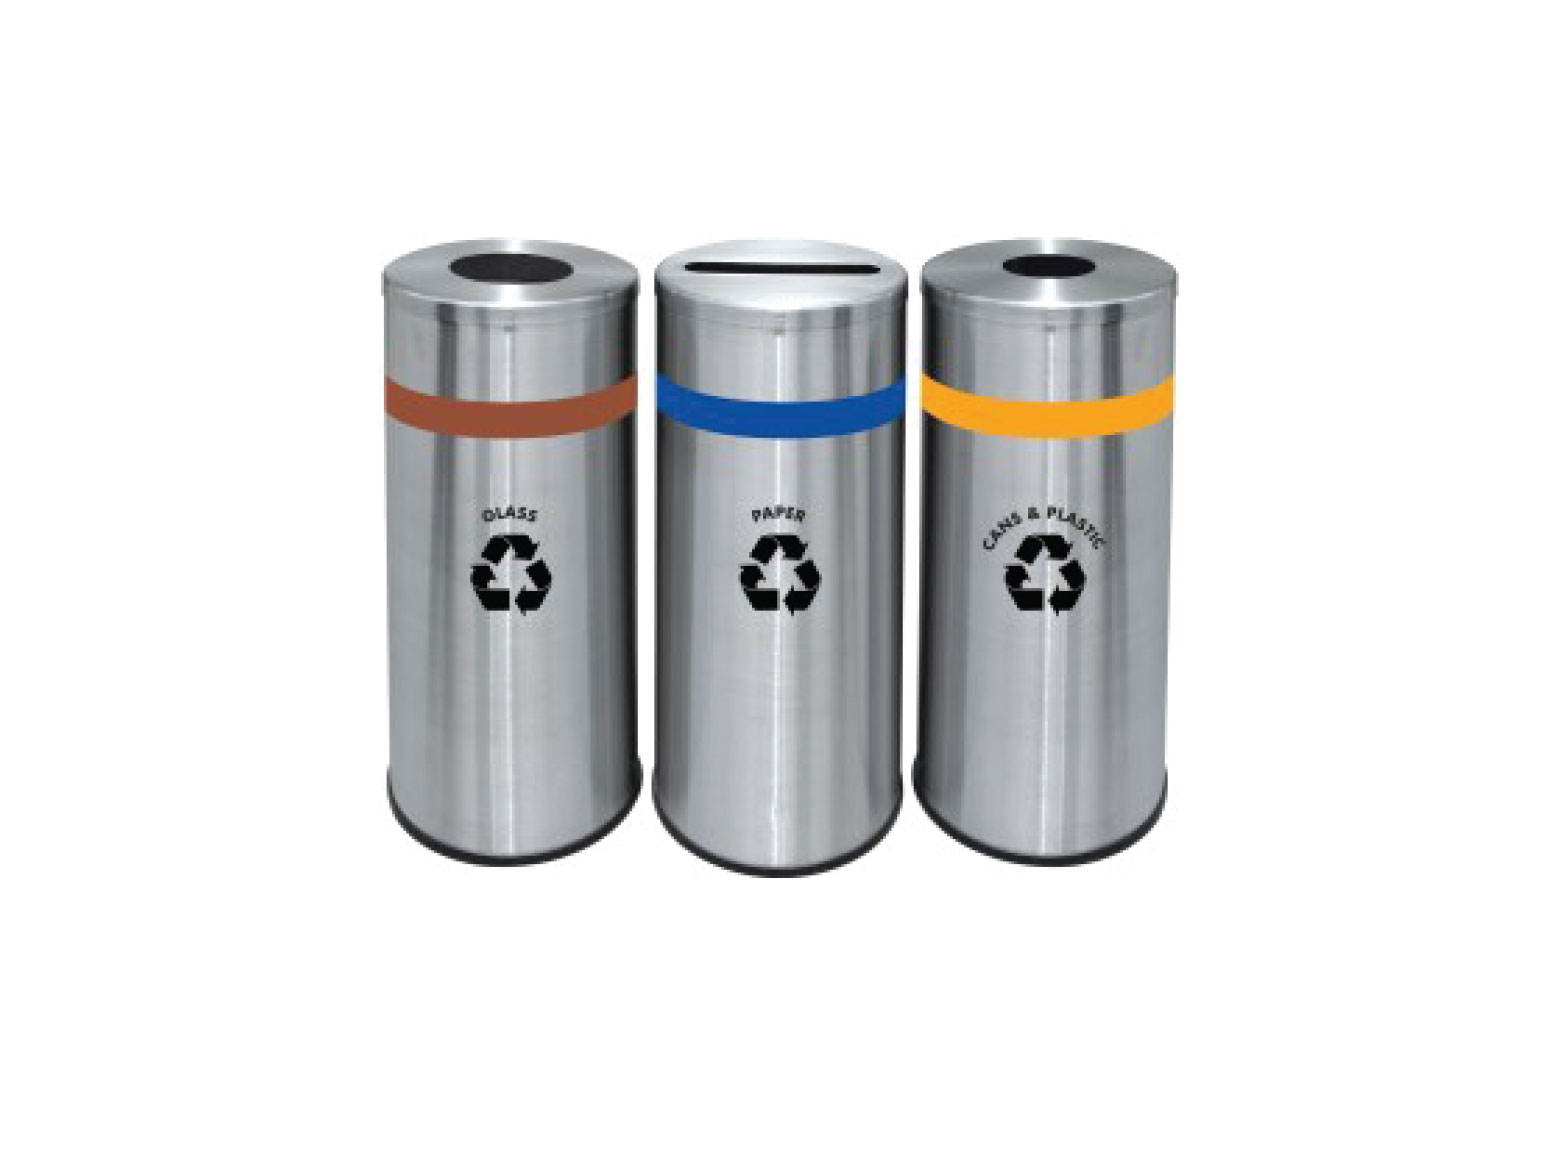 Waste Classiciation Stainless Steel